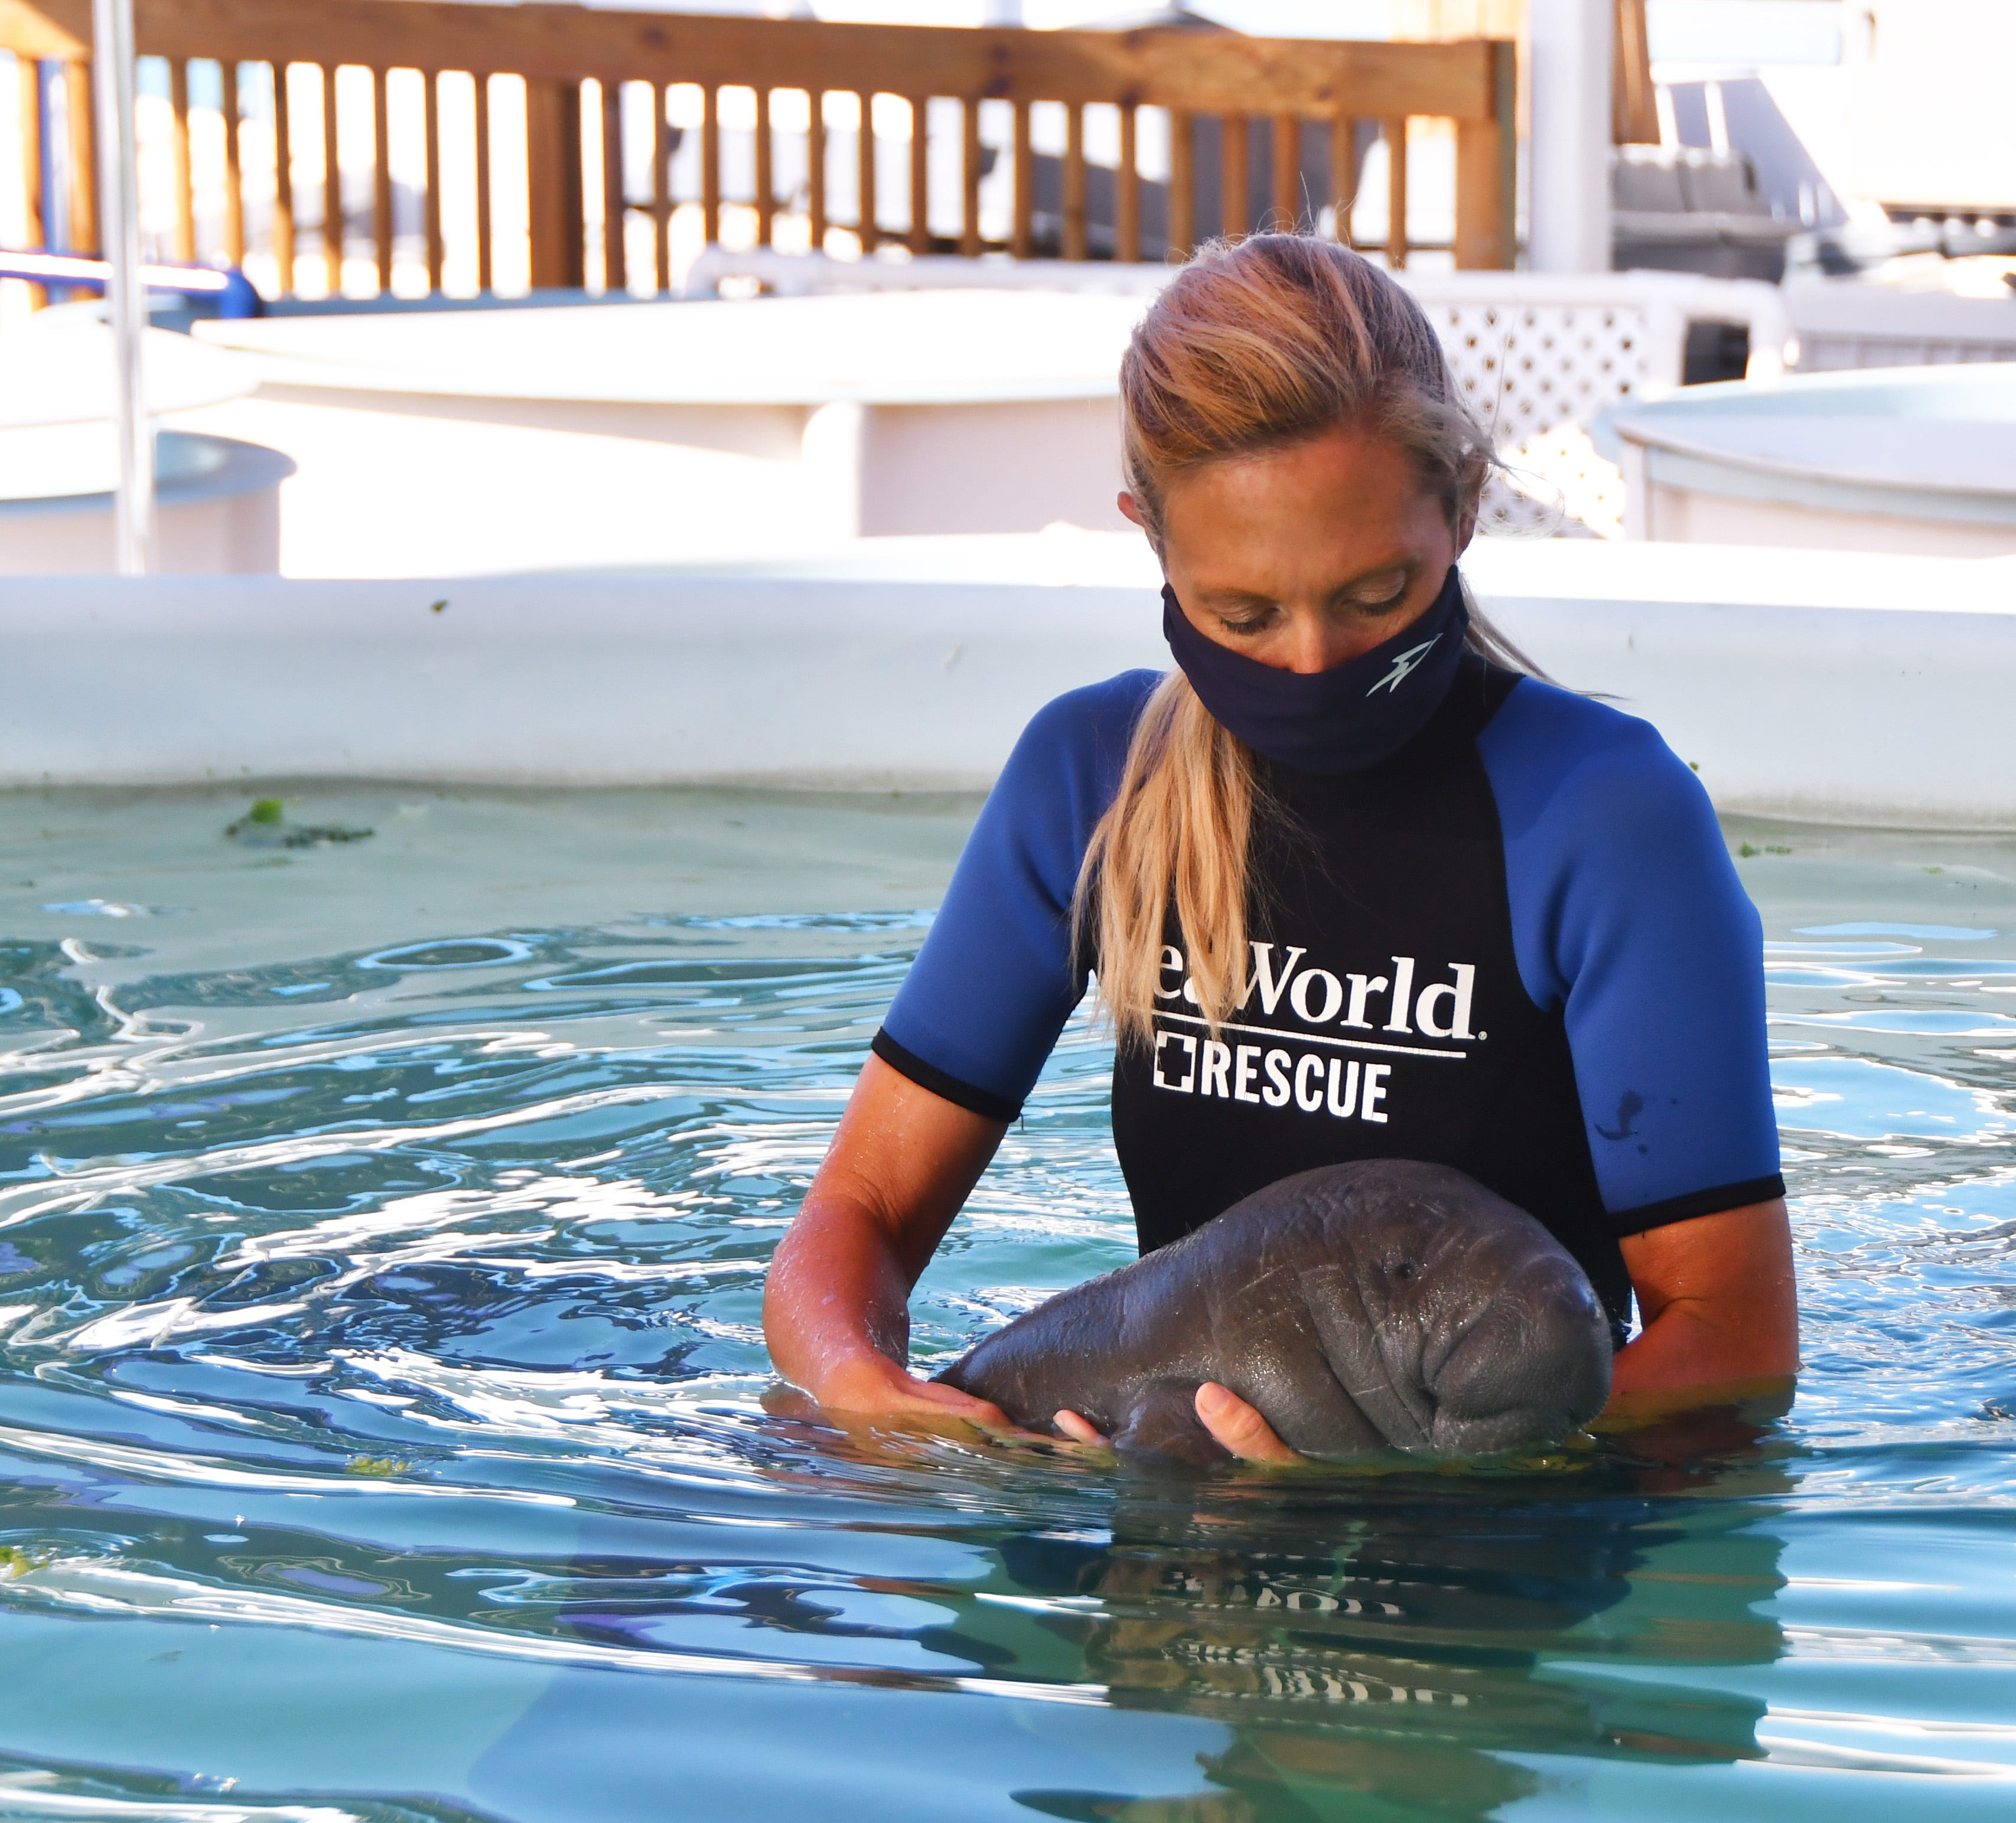 SeaWorld Senior Animal Care Specialist Kelly Cluckey walks an orphaned manatee over to the edge of the pool to tube-feed it.